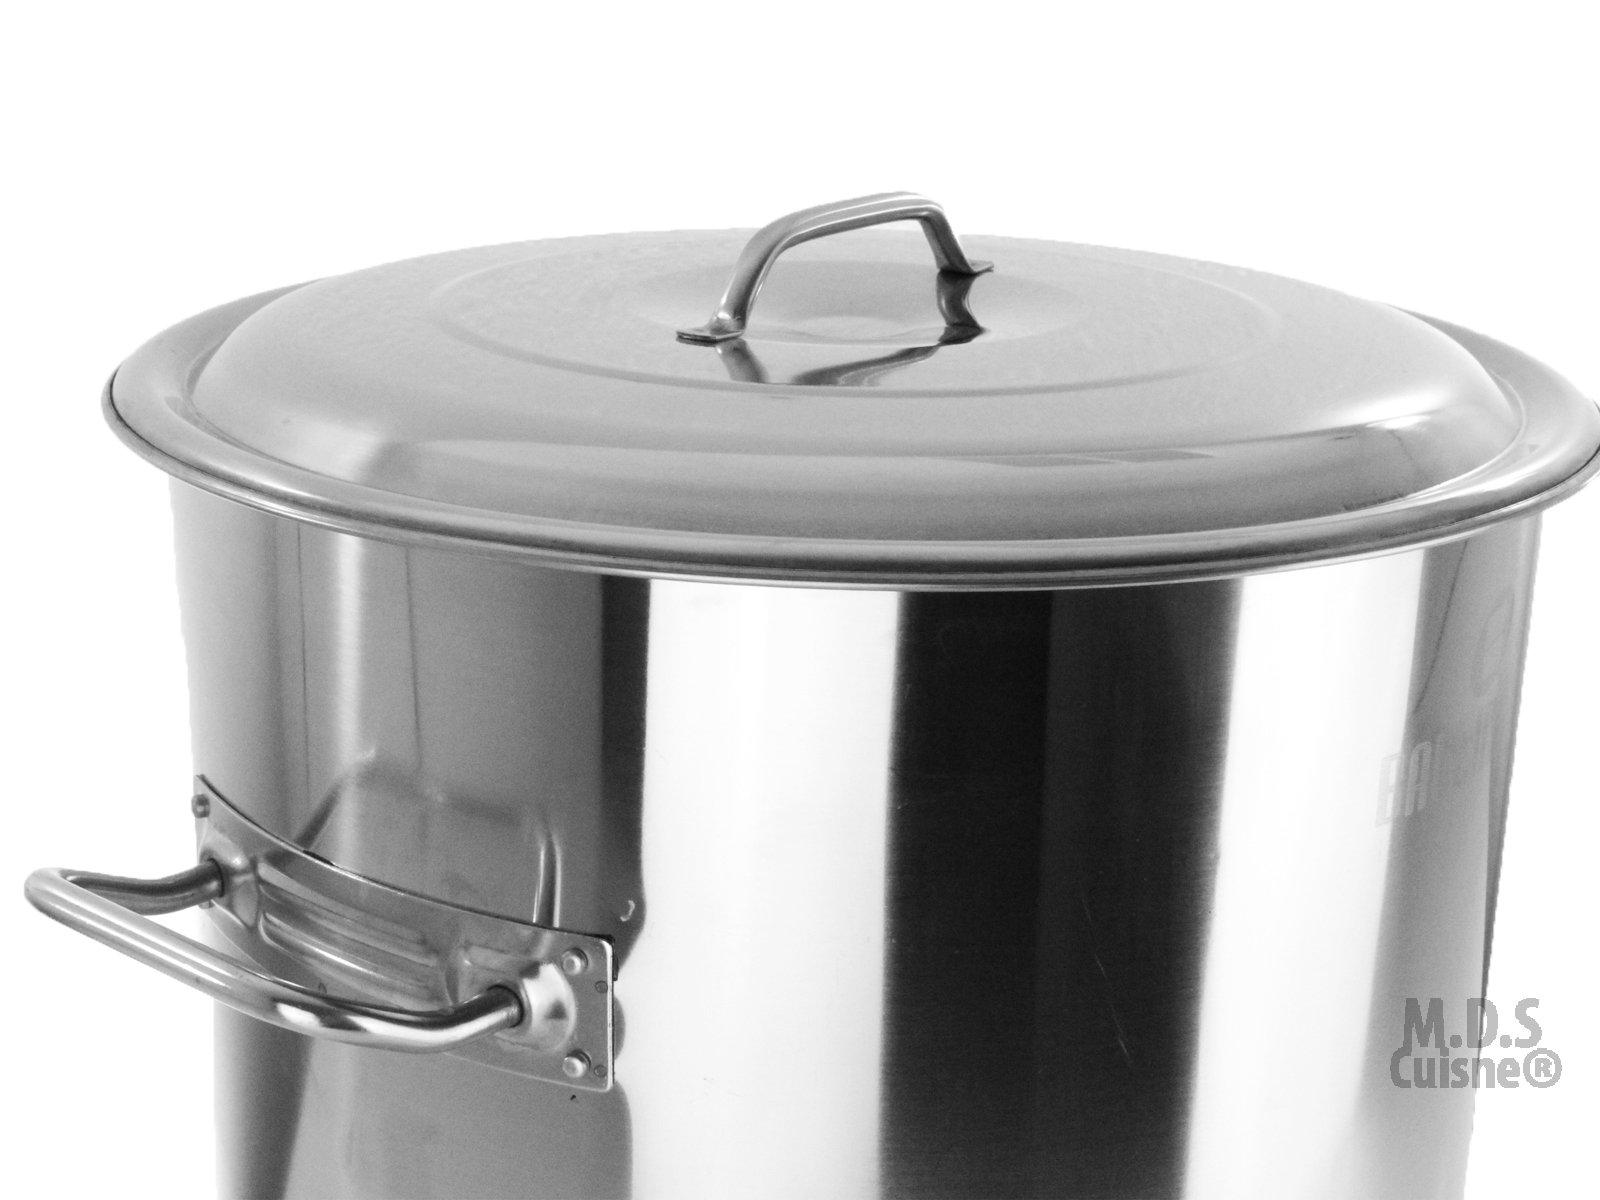 Stock Pot Stainless Steel 52''QT Lid Steamer Brew Vaporera Divider Tamales New by M.D.S Cuisine Cookwares (Image #3)